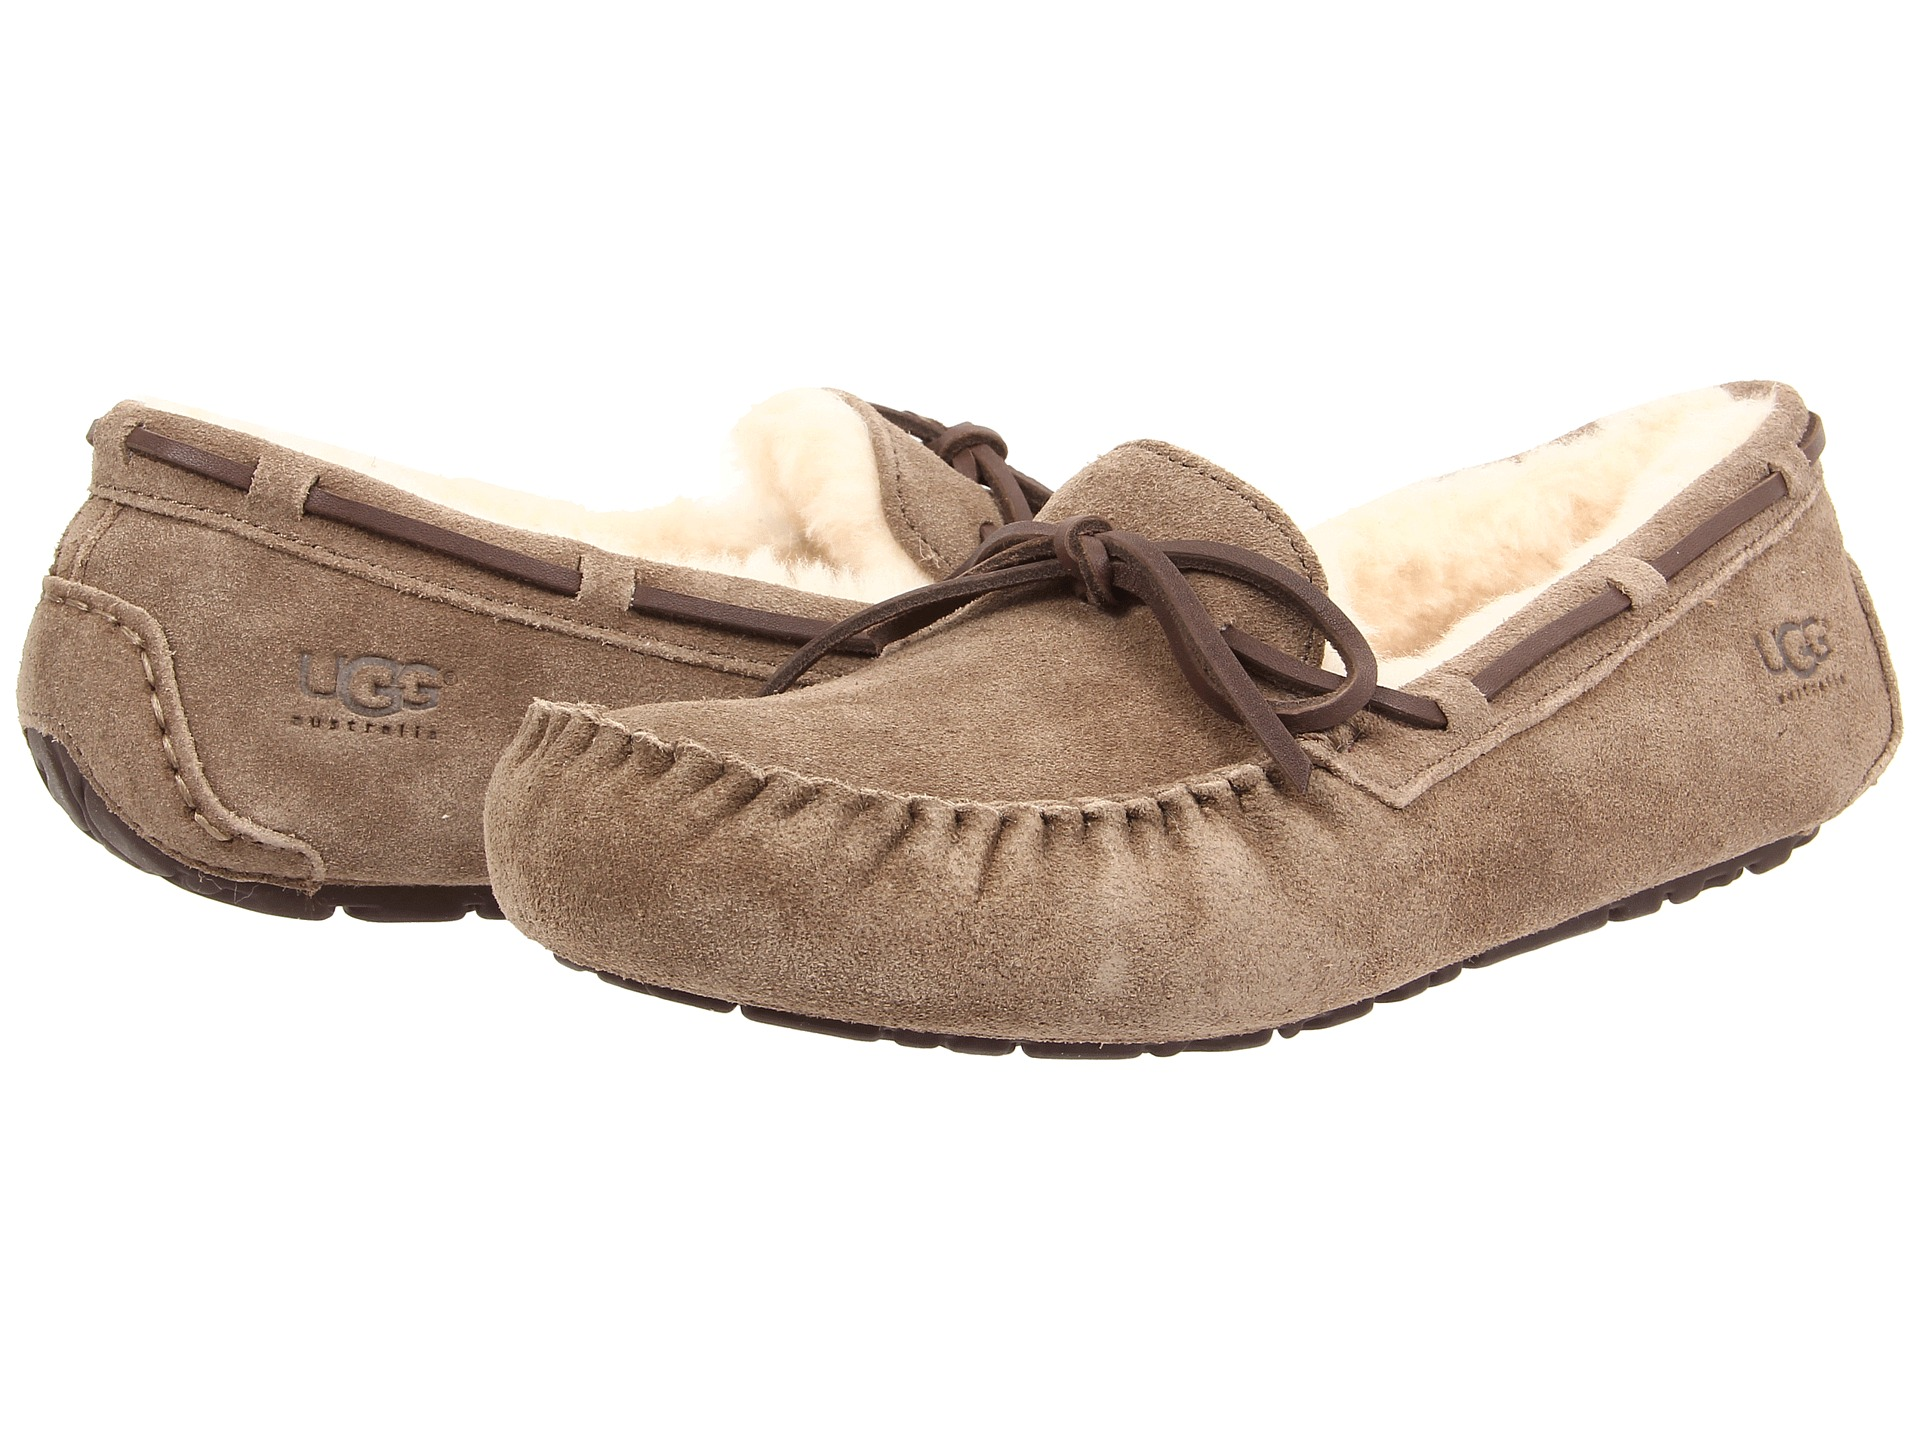 Zappos Ugg Hommes 11777 Chaussons pas Hommes pas cher montres mgc c08d489 - nobopintu.website